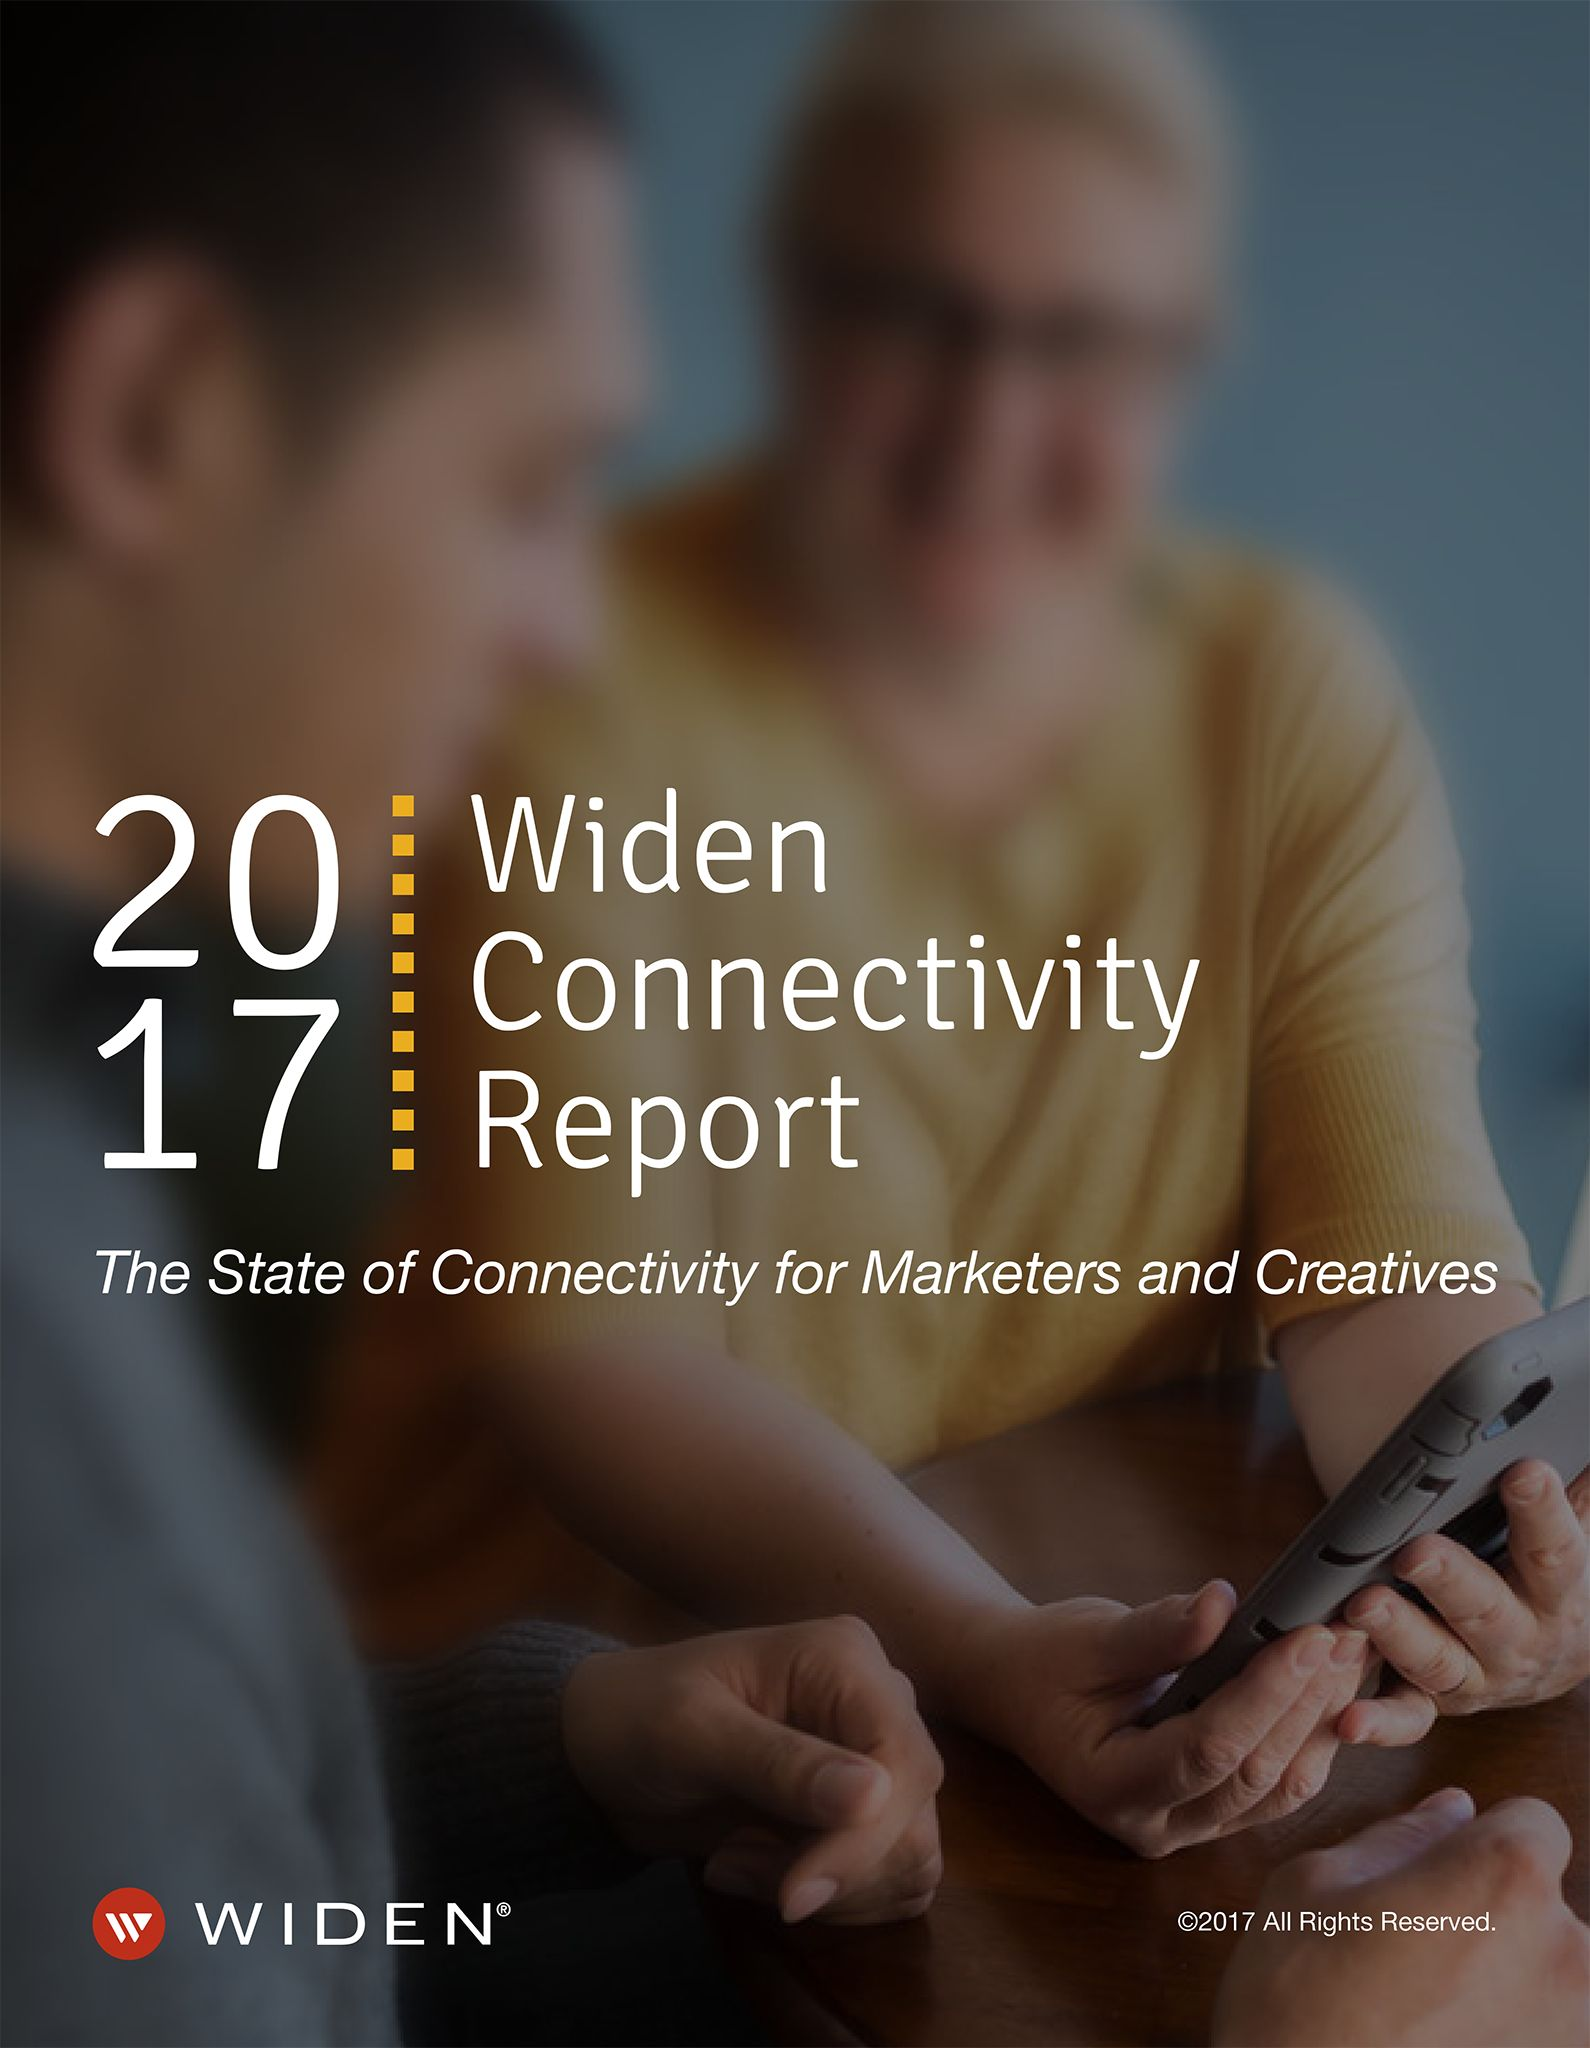 Widen 2017 Connectivity Report